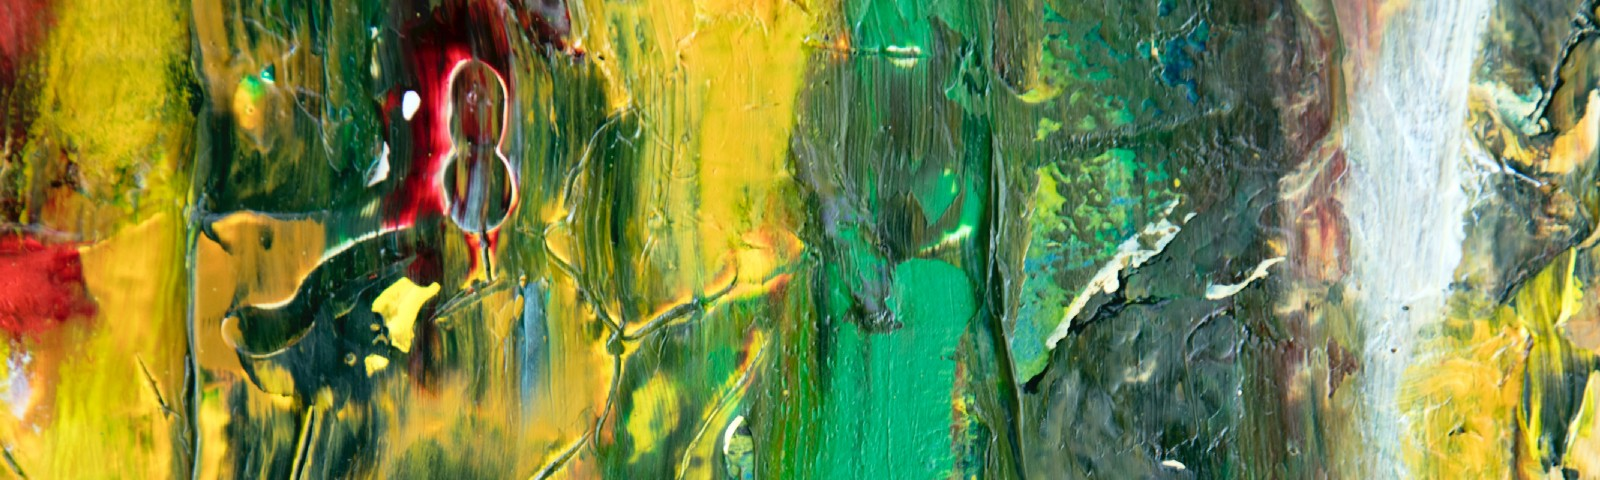 An abstract oil painting, different shades of green and yellow nearly bleeding to red.